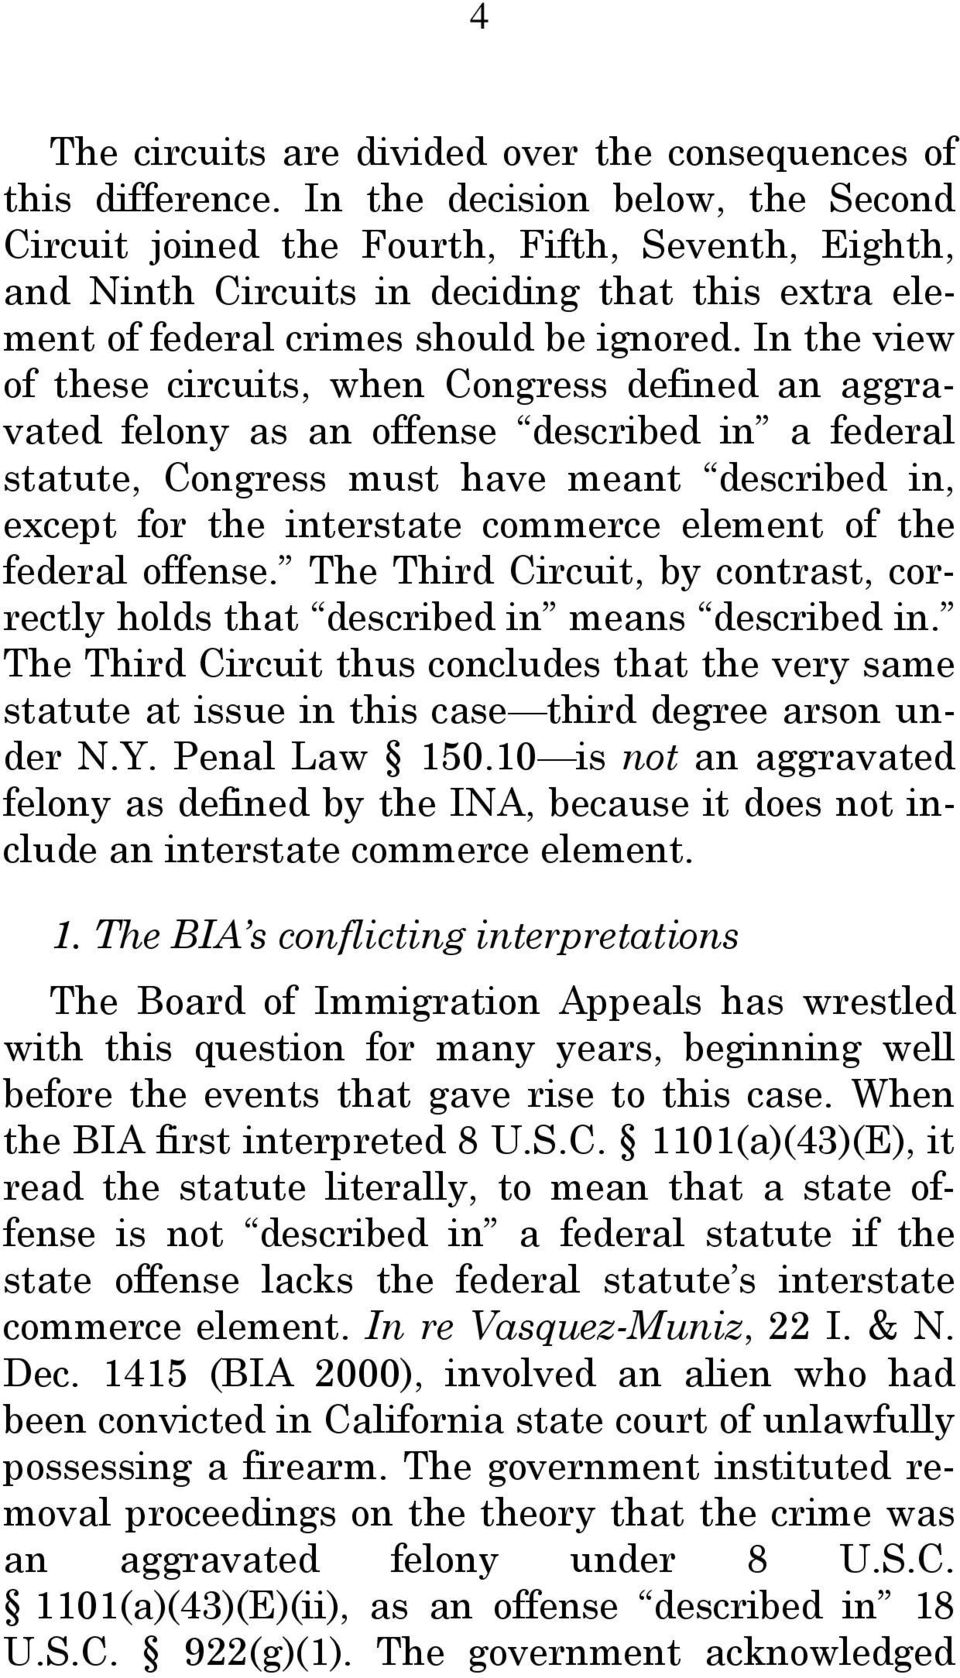 In the view of these circuits, when Congress defined an aggravated felony as an offense described in a federal statute, Congress must have meant described in, except for the interstate commerce